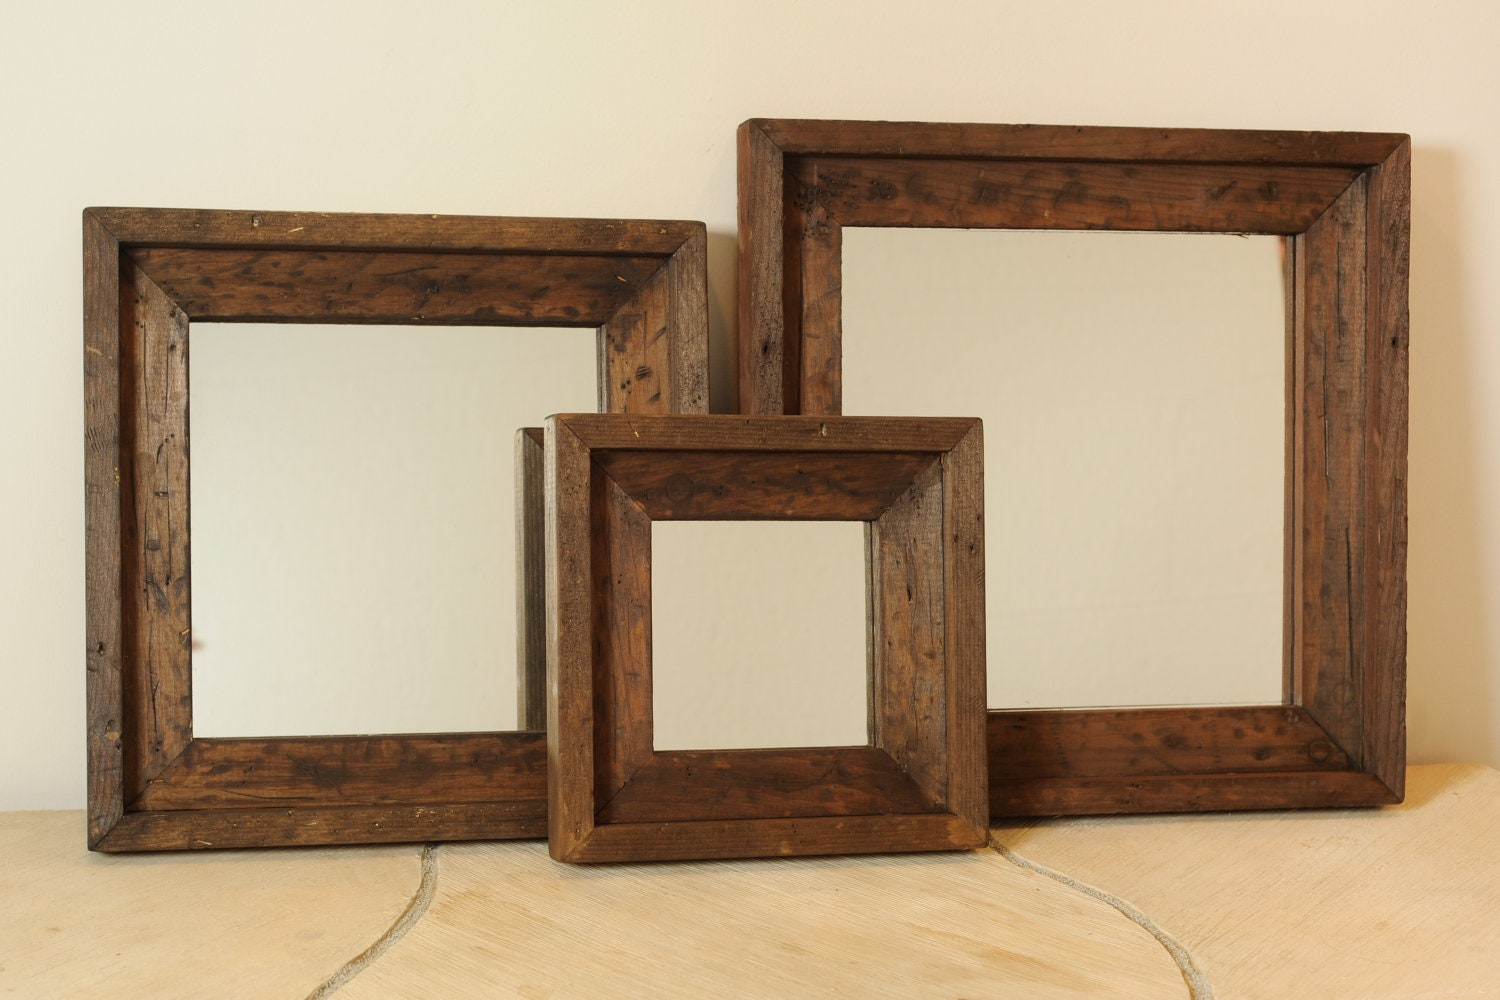 3 piece distressed wood mirror set by englertandenglert on etsy. Black Bedroom Furniture Sets. Home Design Ideas